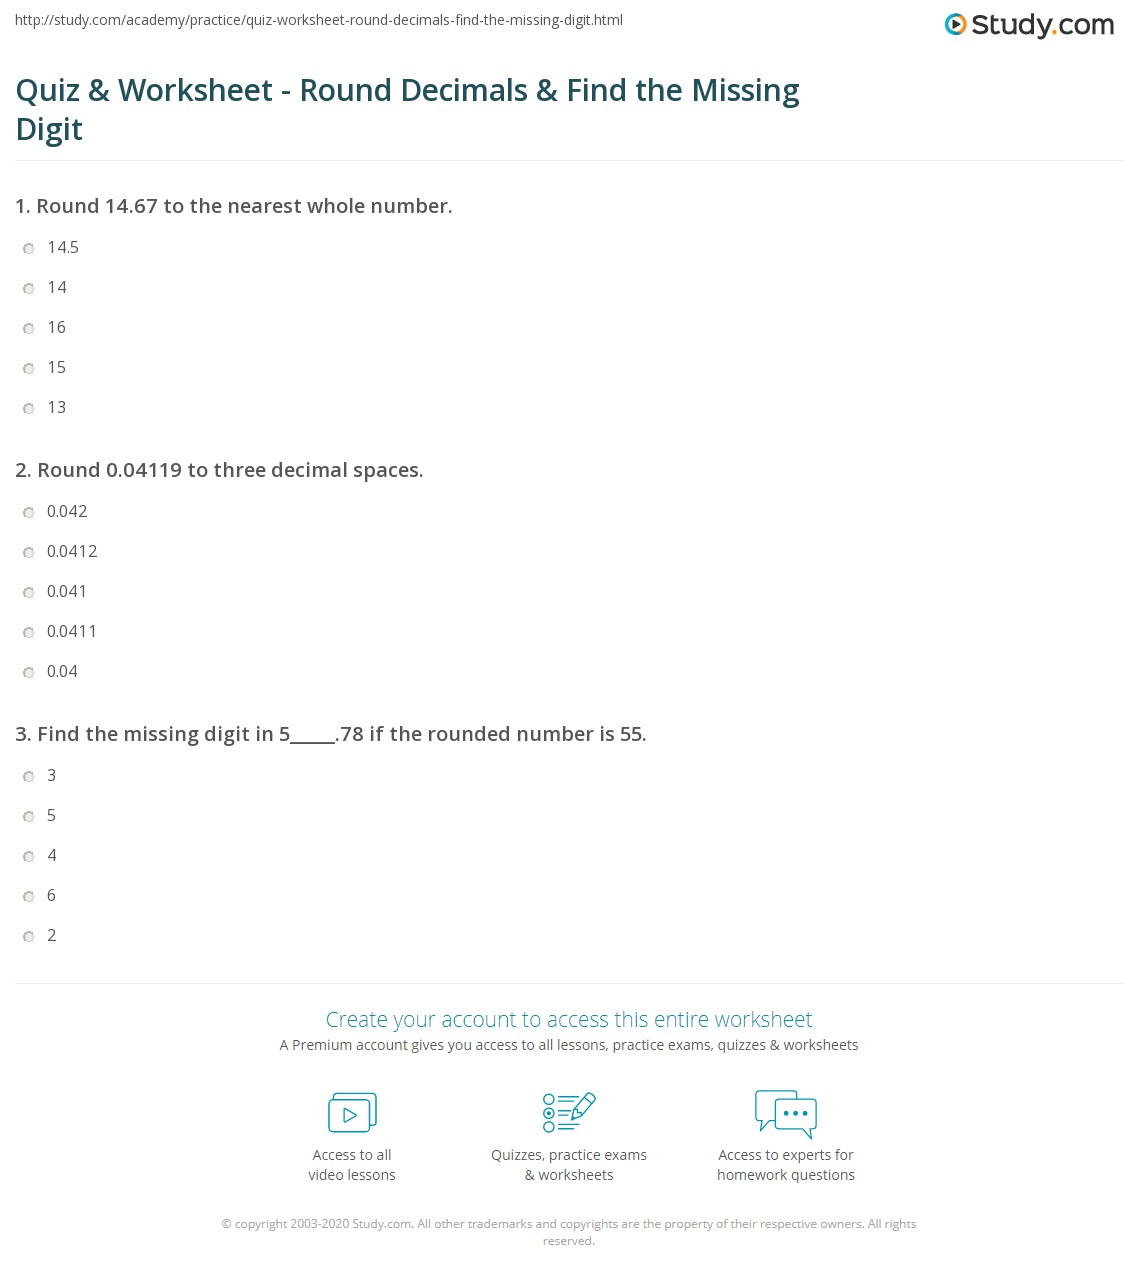 math worksheet : quiz  worksheet  round decimals  find the missing digit  study  : Rounding Decimals To Whole Numbers Worksheet